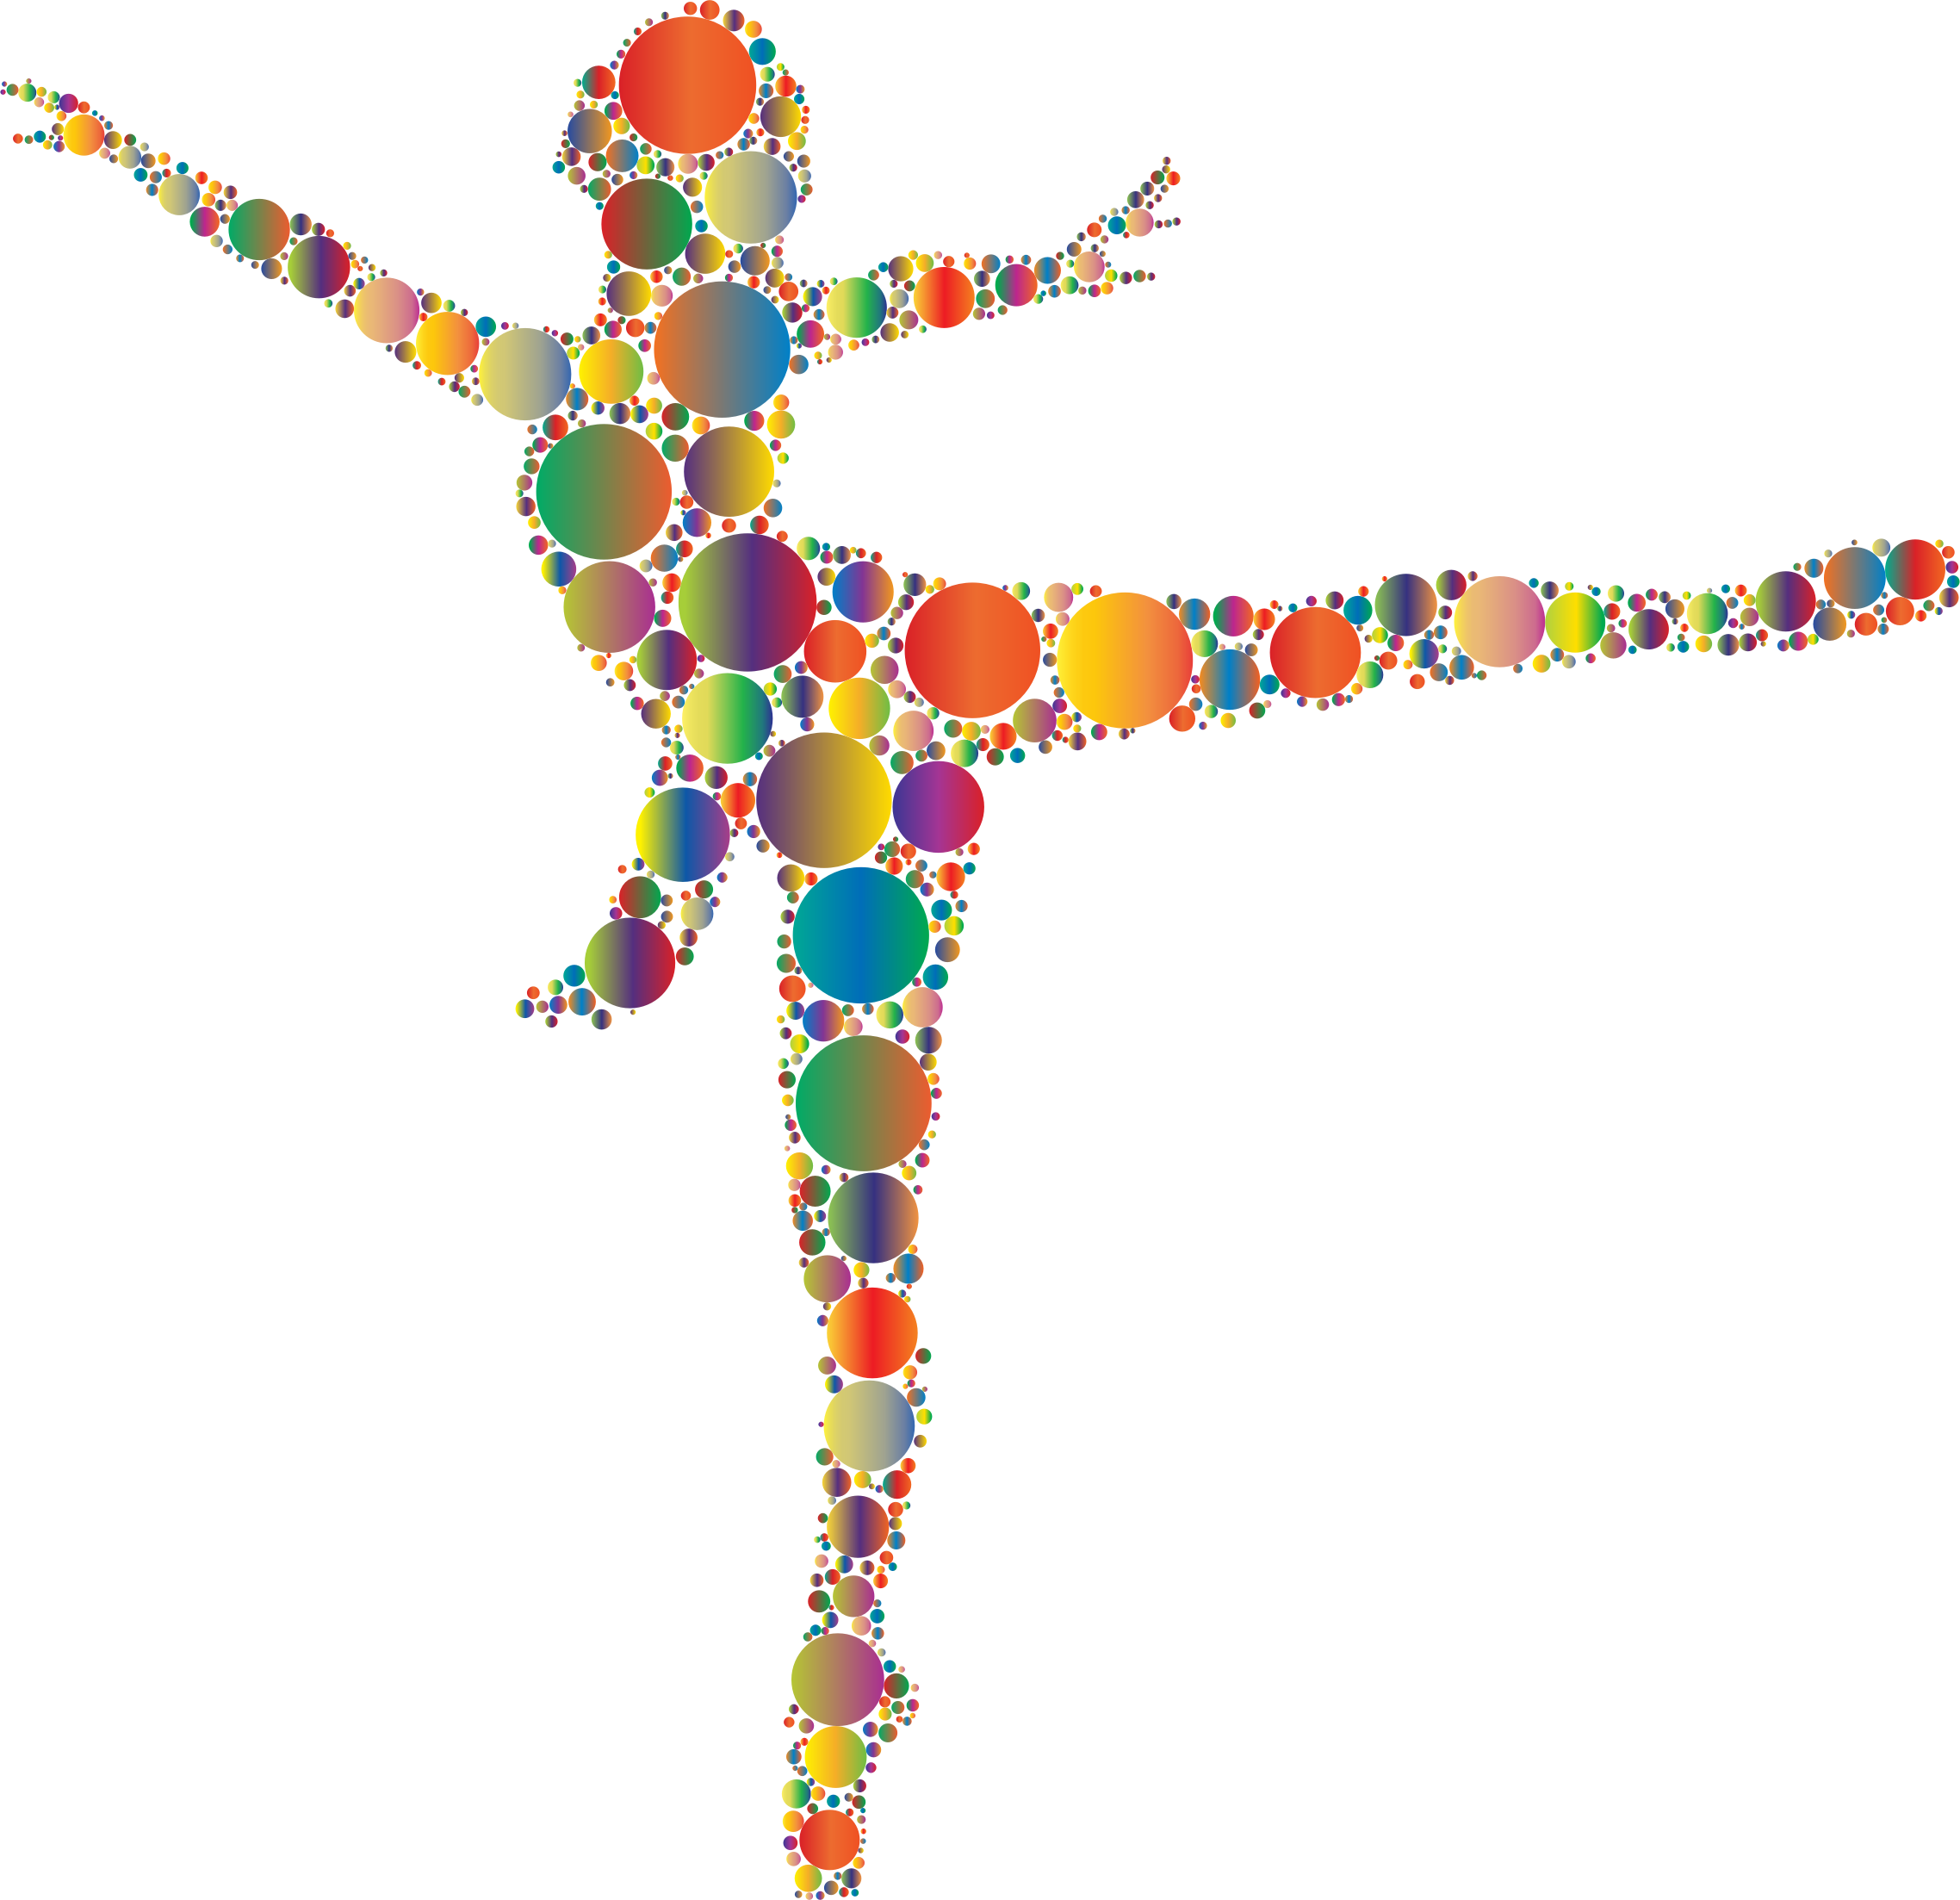 Dancer clipart abstract. Colorful ballet circles icons